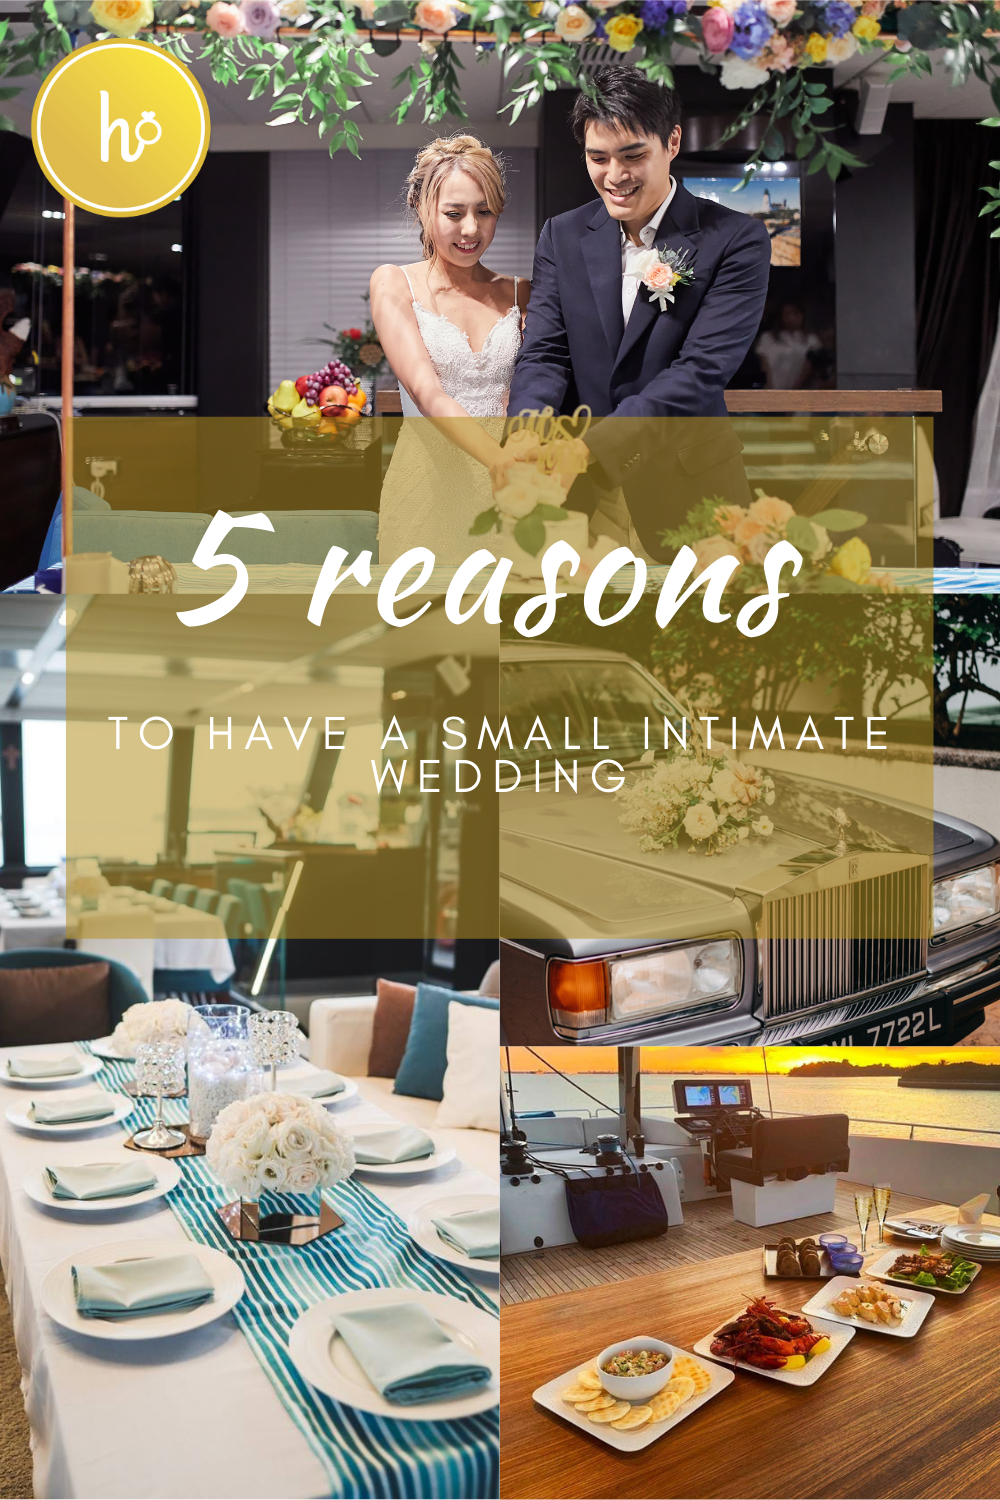 5 Reasons To Have An Intimate Non Hotel Wedding In Singapore Hotel Wedding Intimate Wedding Small Intimate Wedding [ 1500 x 1000 Pixel ]